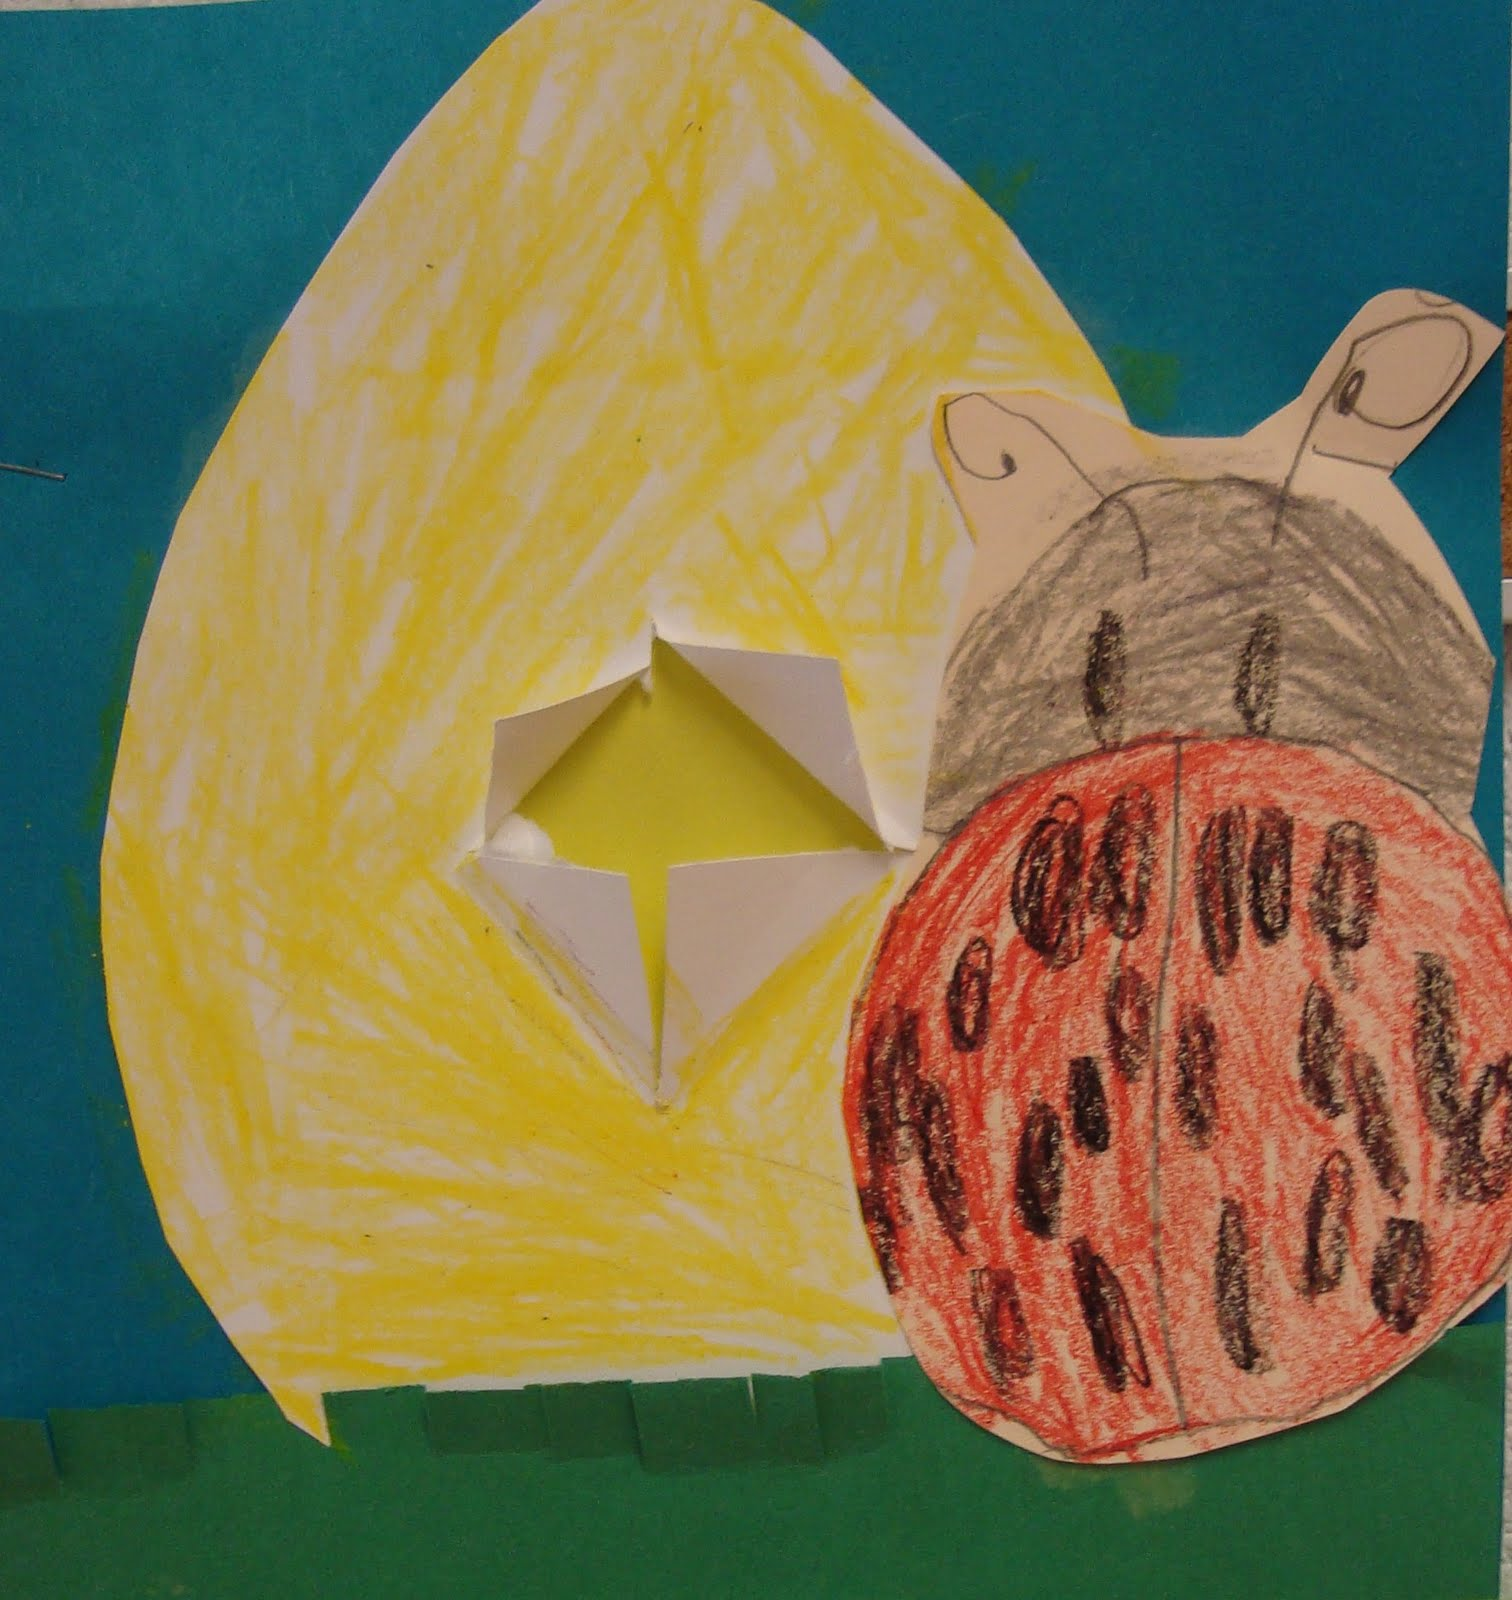 Animals That Hatch from Eggs http://first-grade-friends.blogspot.com/2011/04/egg-stra-special-animals-hatch-from.html